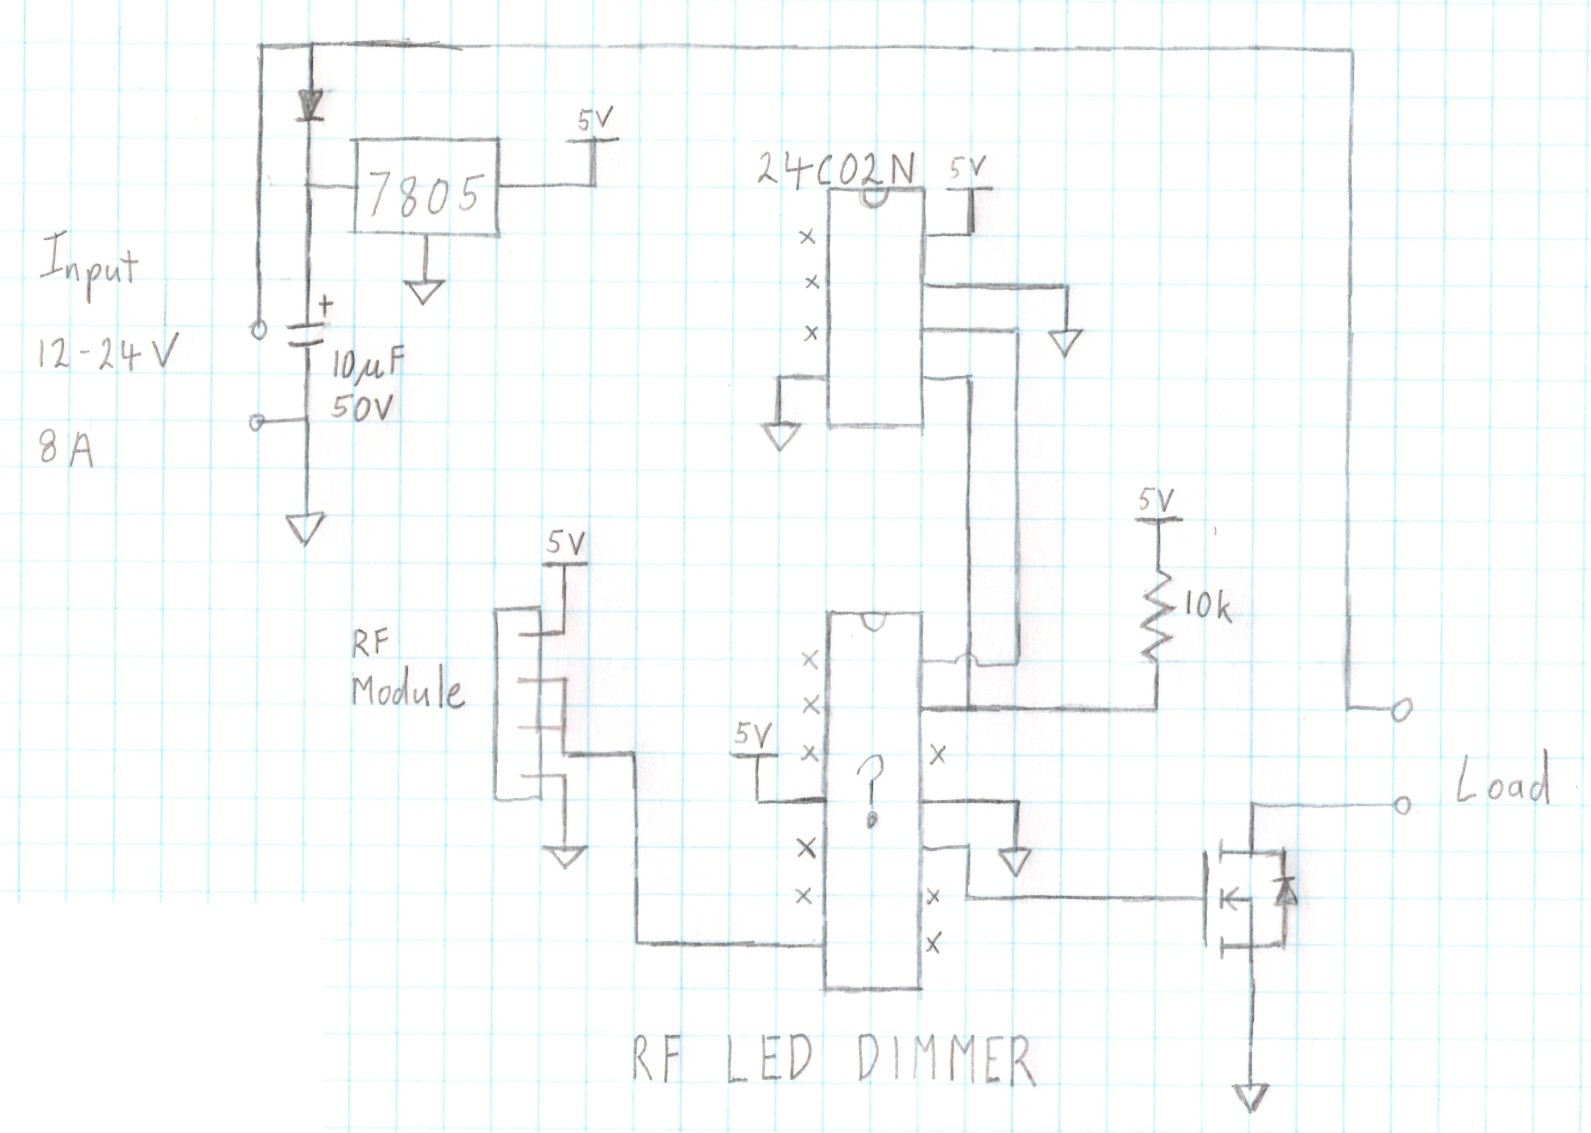 Led Dimmer Circuit